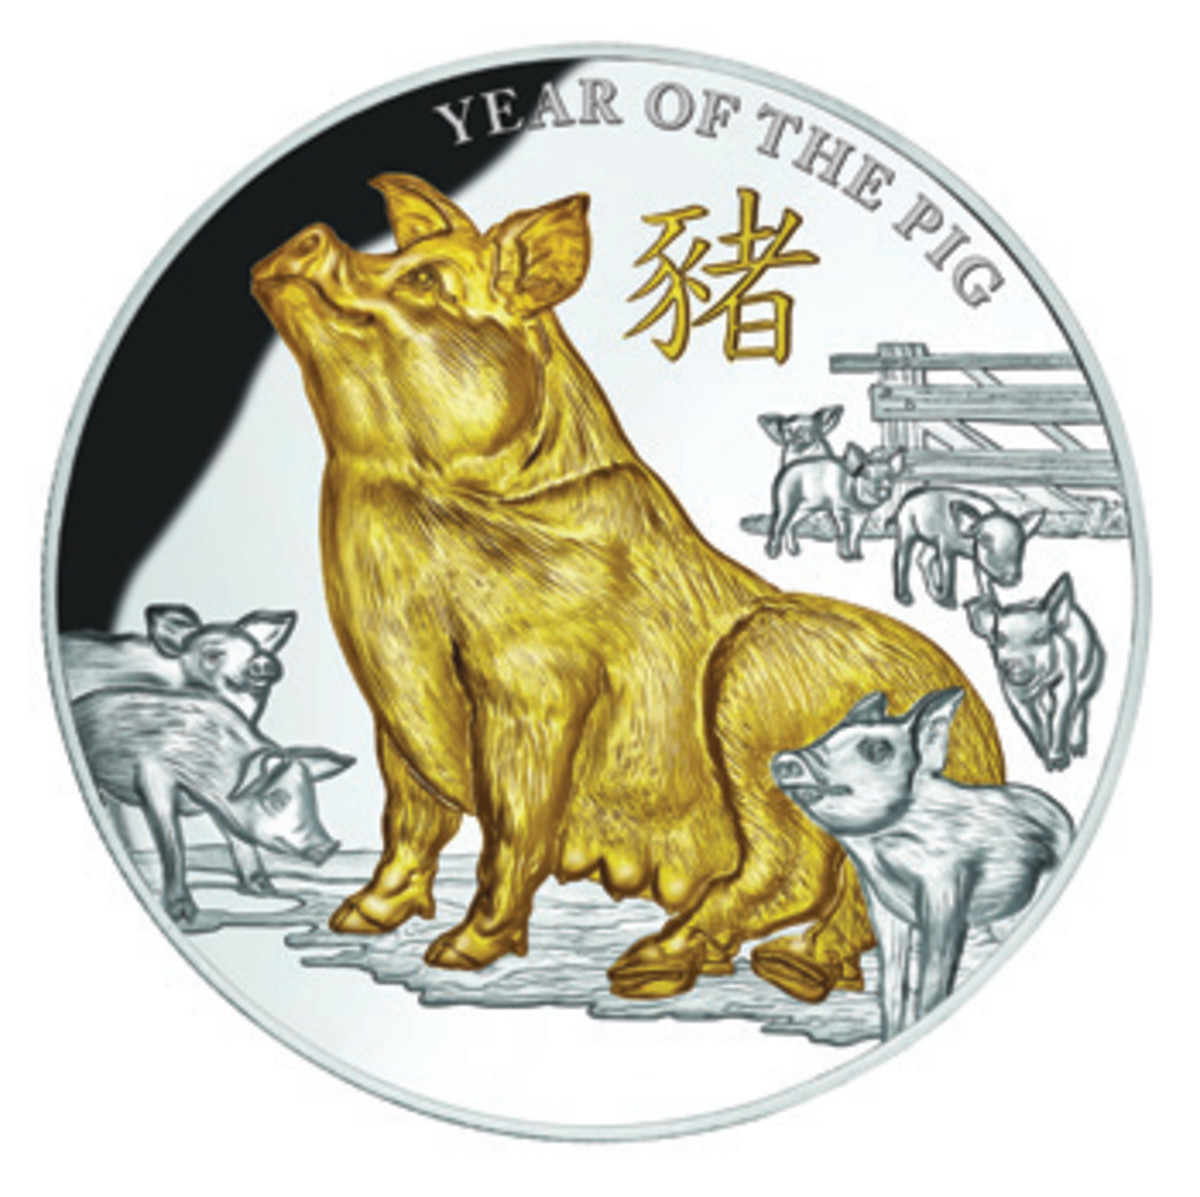 A selectively gold-plated sow dominates Niue's proof $8 struck by Produits Artistiques Métaux Précieux. (Image courtesy www.downies.com)